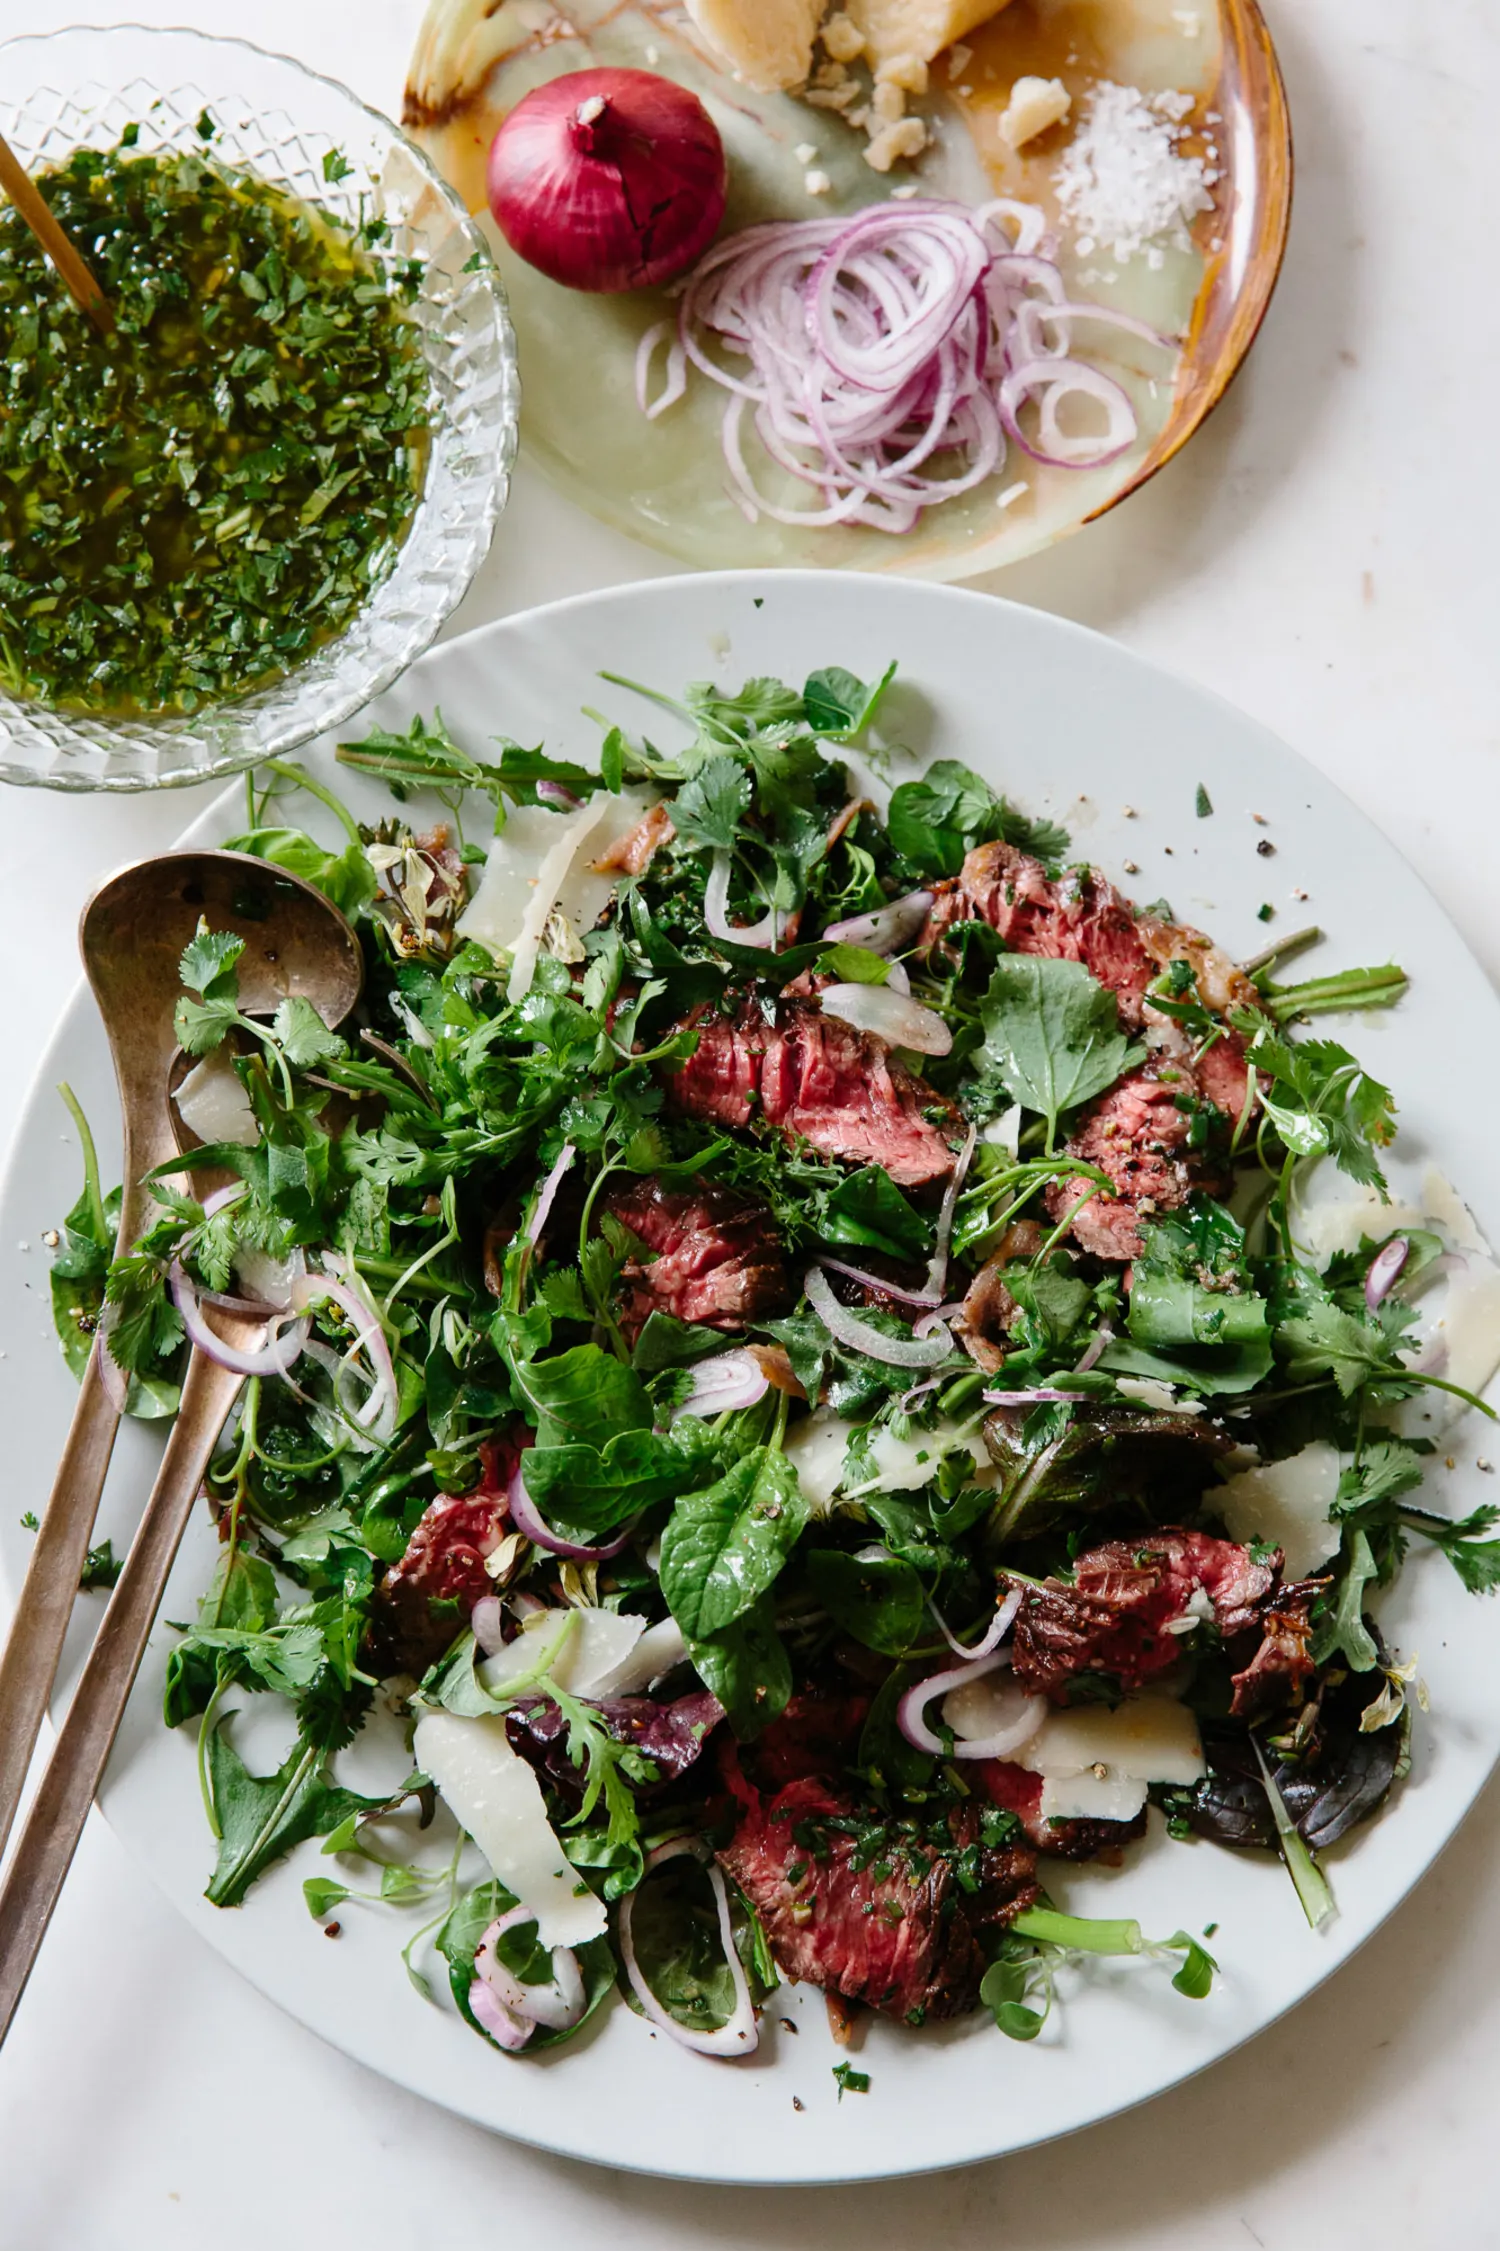 Hanger Steak with Dandelion, Arugula, and Grana Padano images